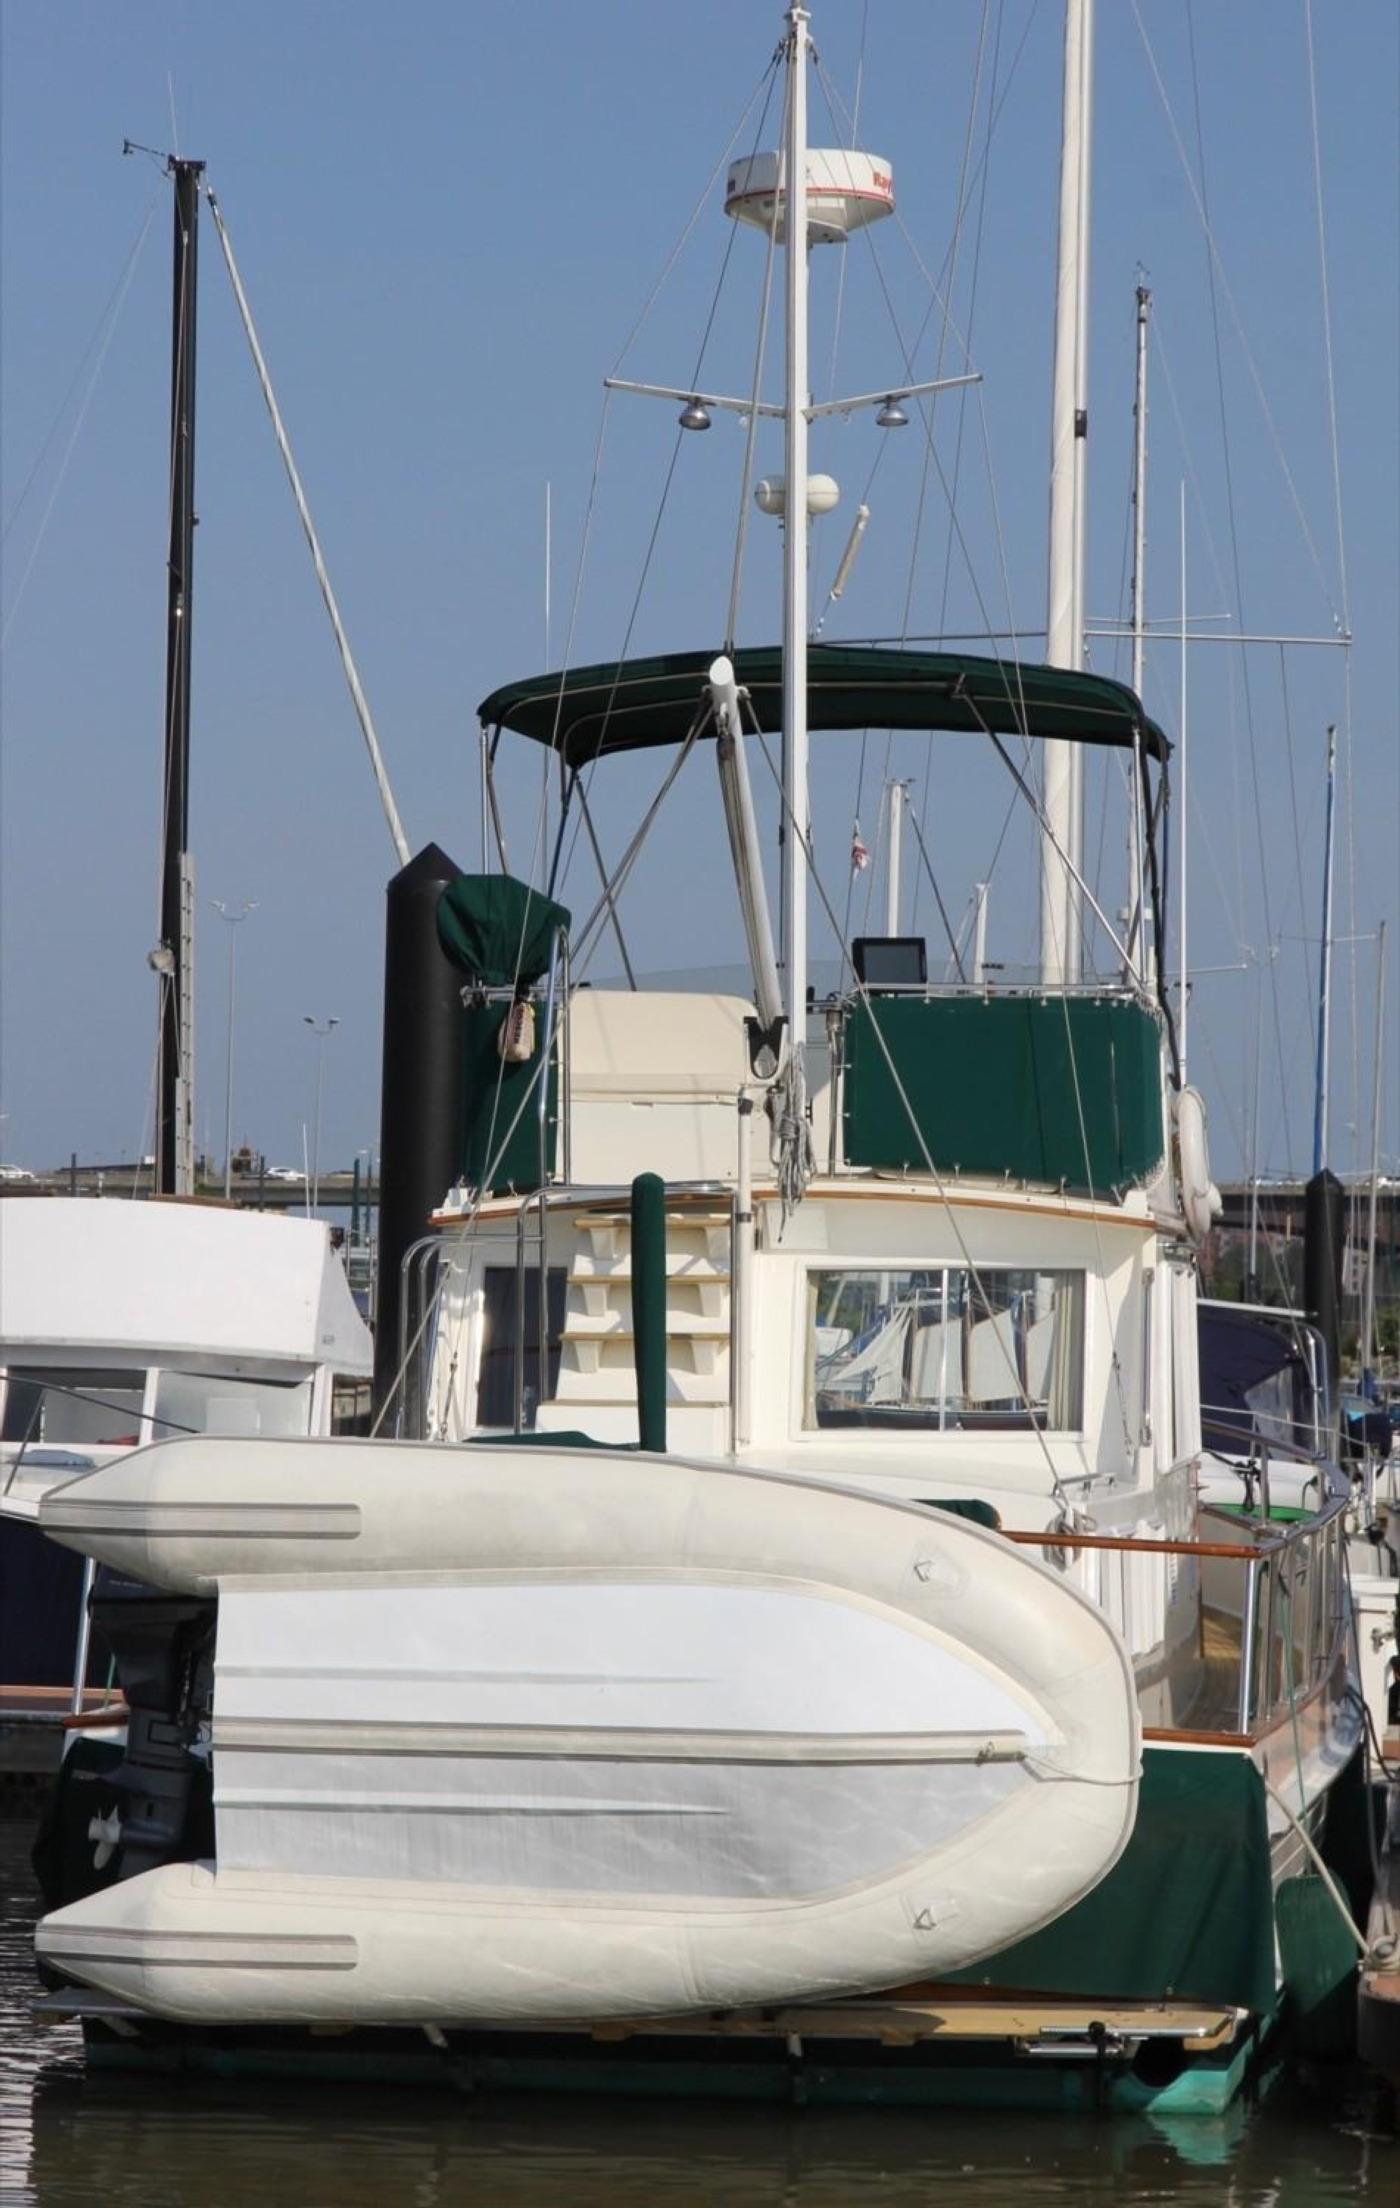 1995 Grand Banks Classic, Aft View